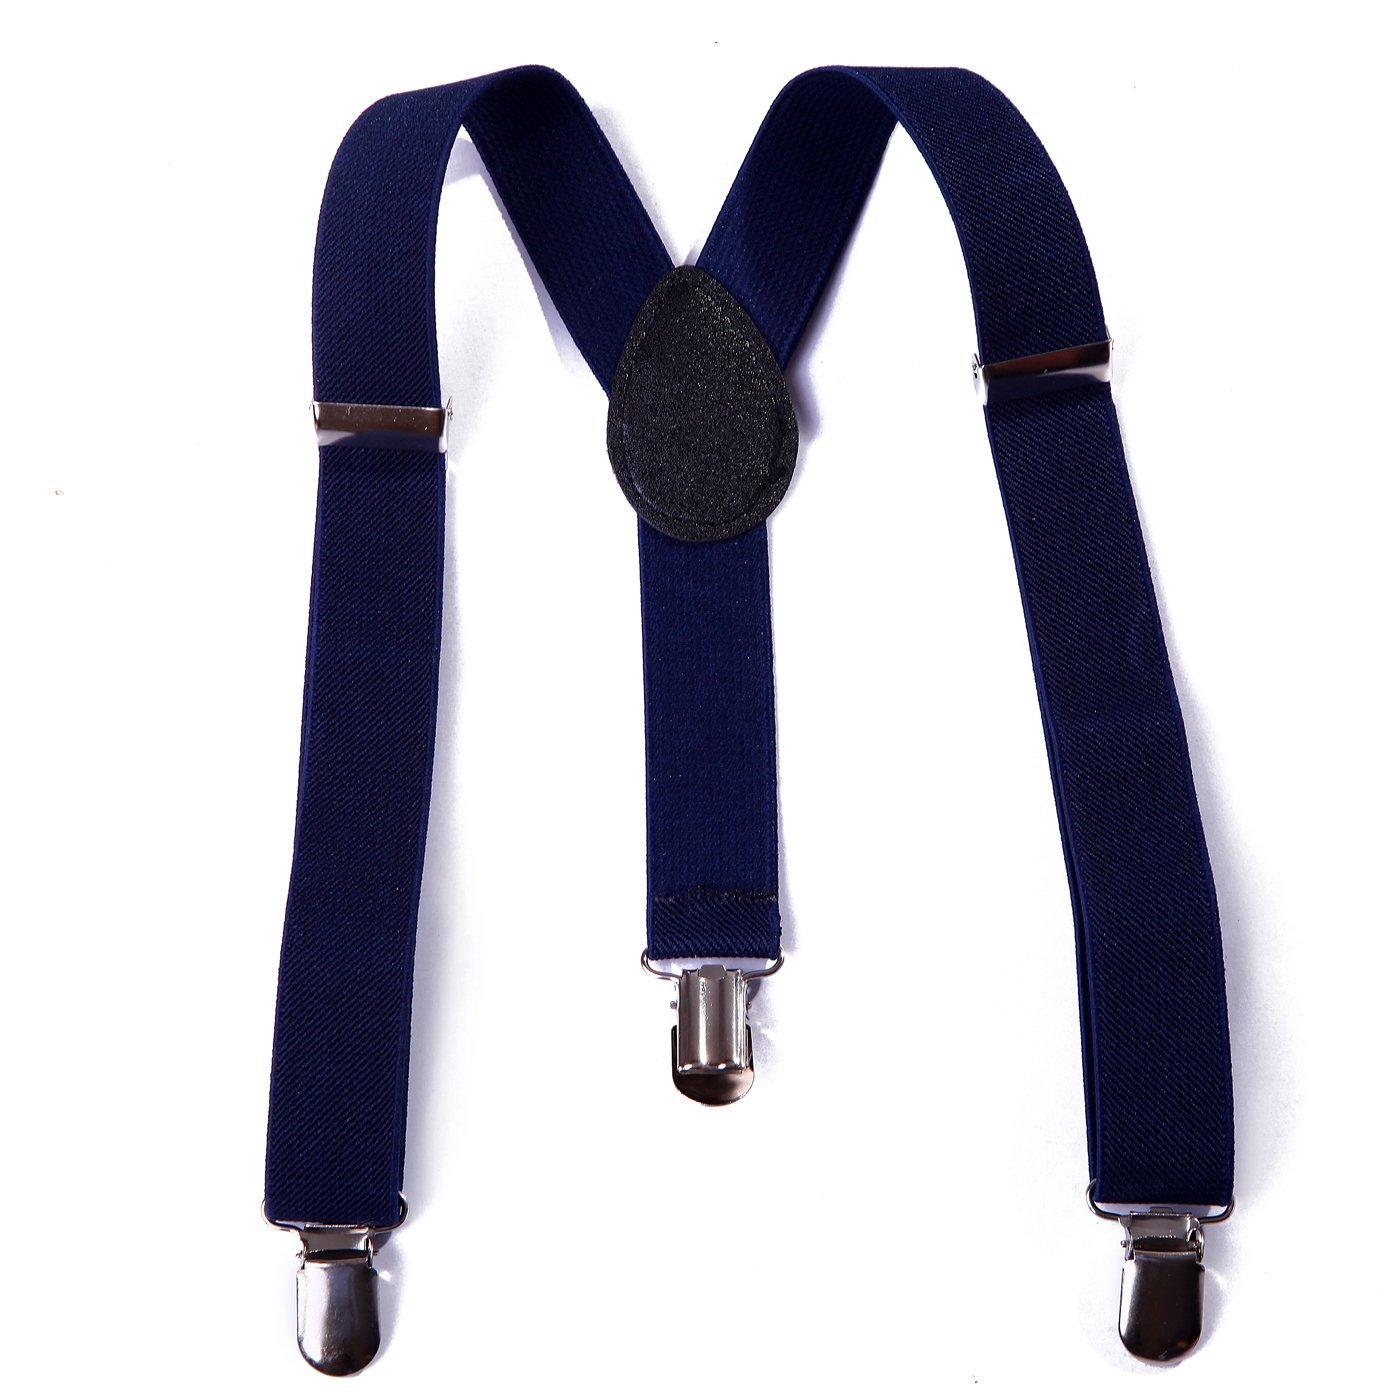 HDE Boys Solid Color Suspenders Kids Adjustable Elastic Y Back with Metal Clips